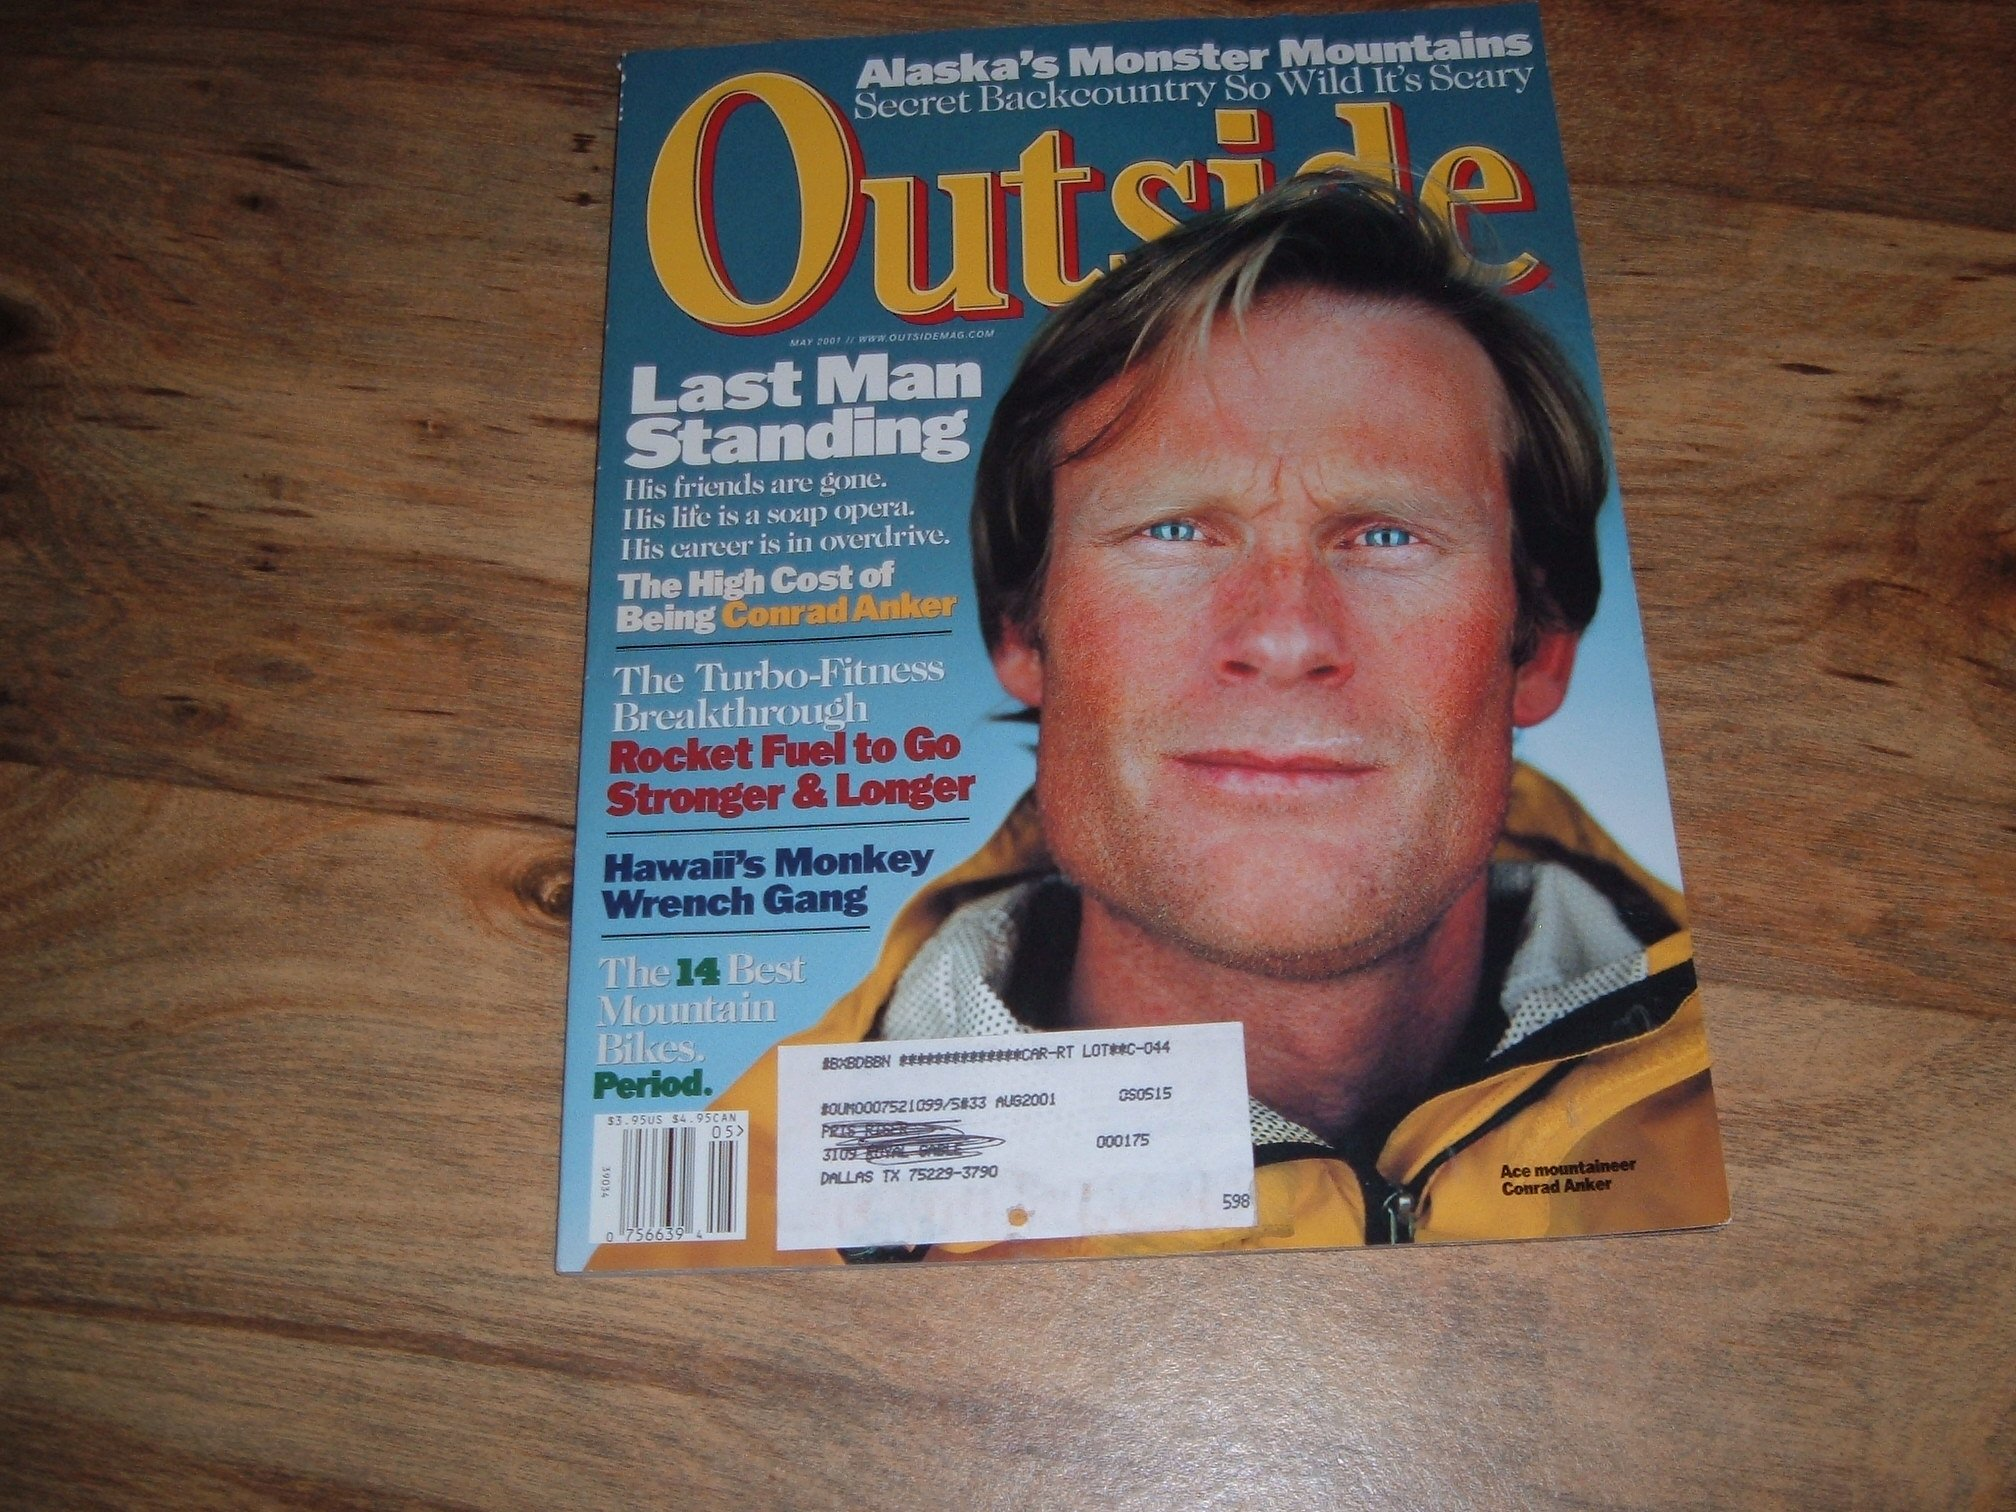 Outside, May 2001-Mountaineer Conrad Anker & Molokai, Hawaii-Chinatown of the Pacific.: May 2001-Mountaineer Conrad Anker & Molokai, Hawaii-Chinatown of the ...